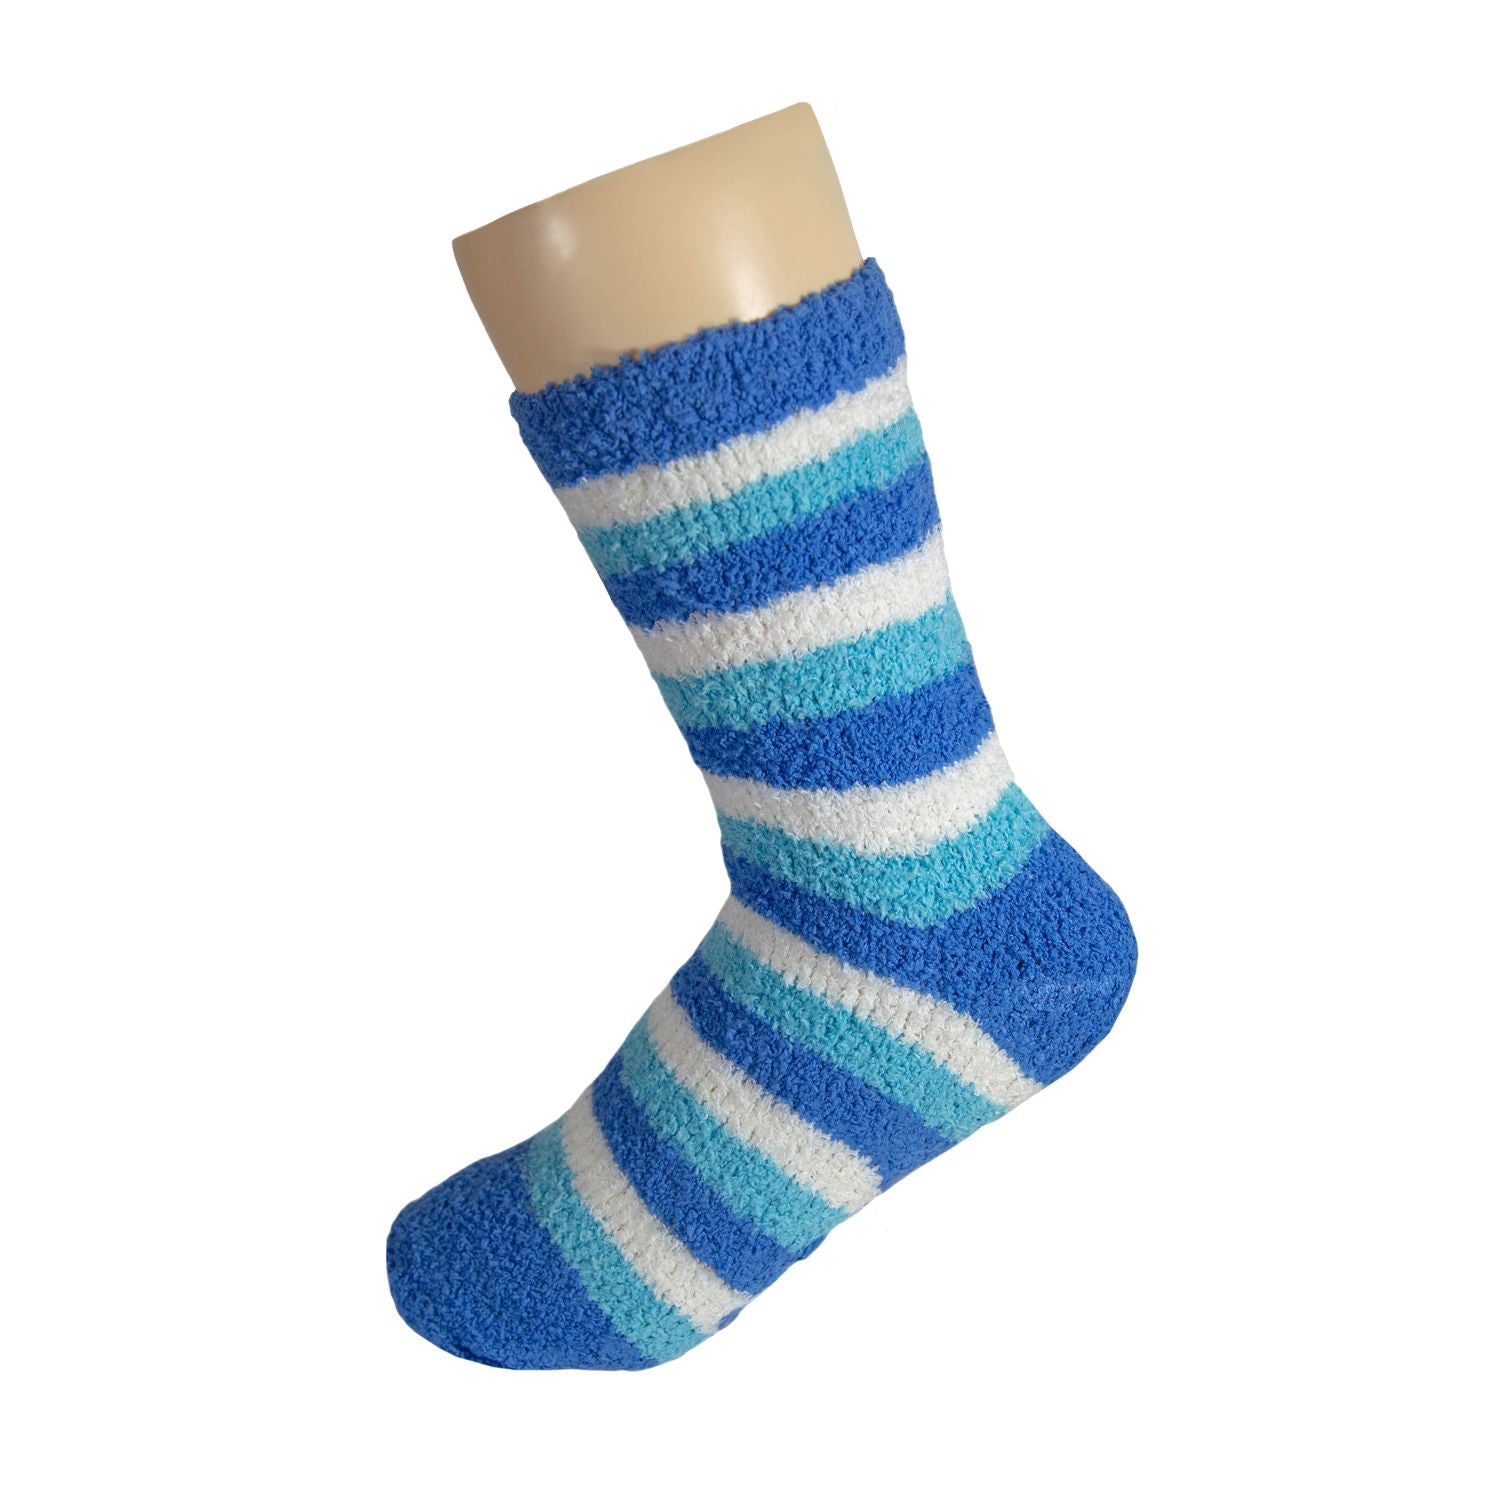 Navy White and Blue Striped  Anti Skid Fuzzy Socks with Rubber Grips For Women